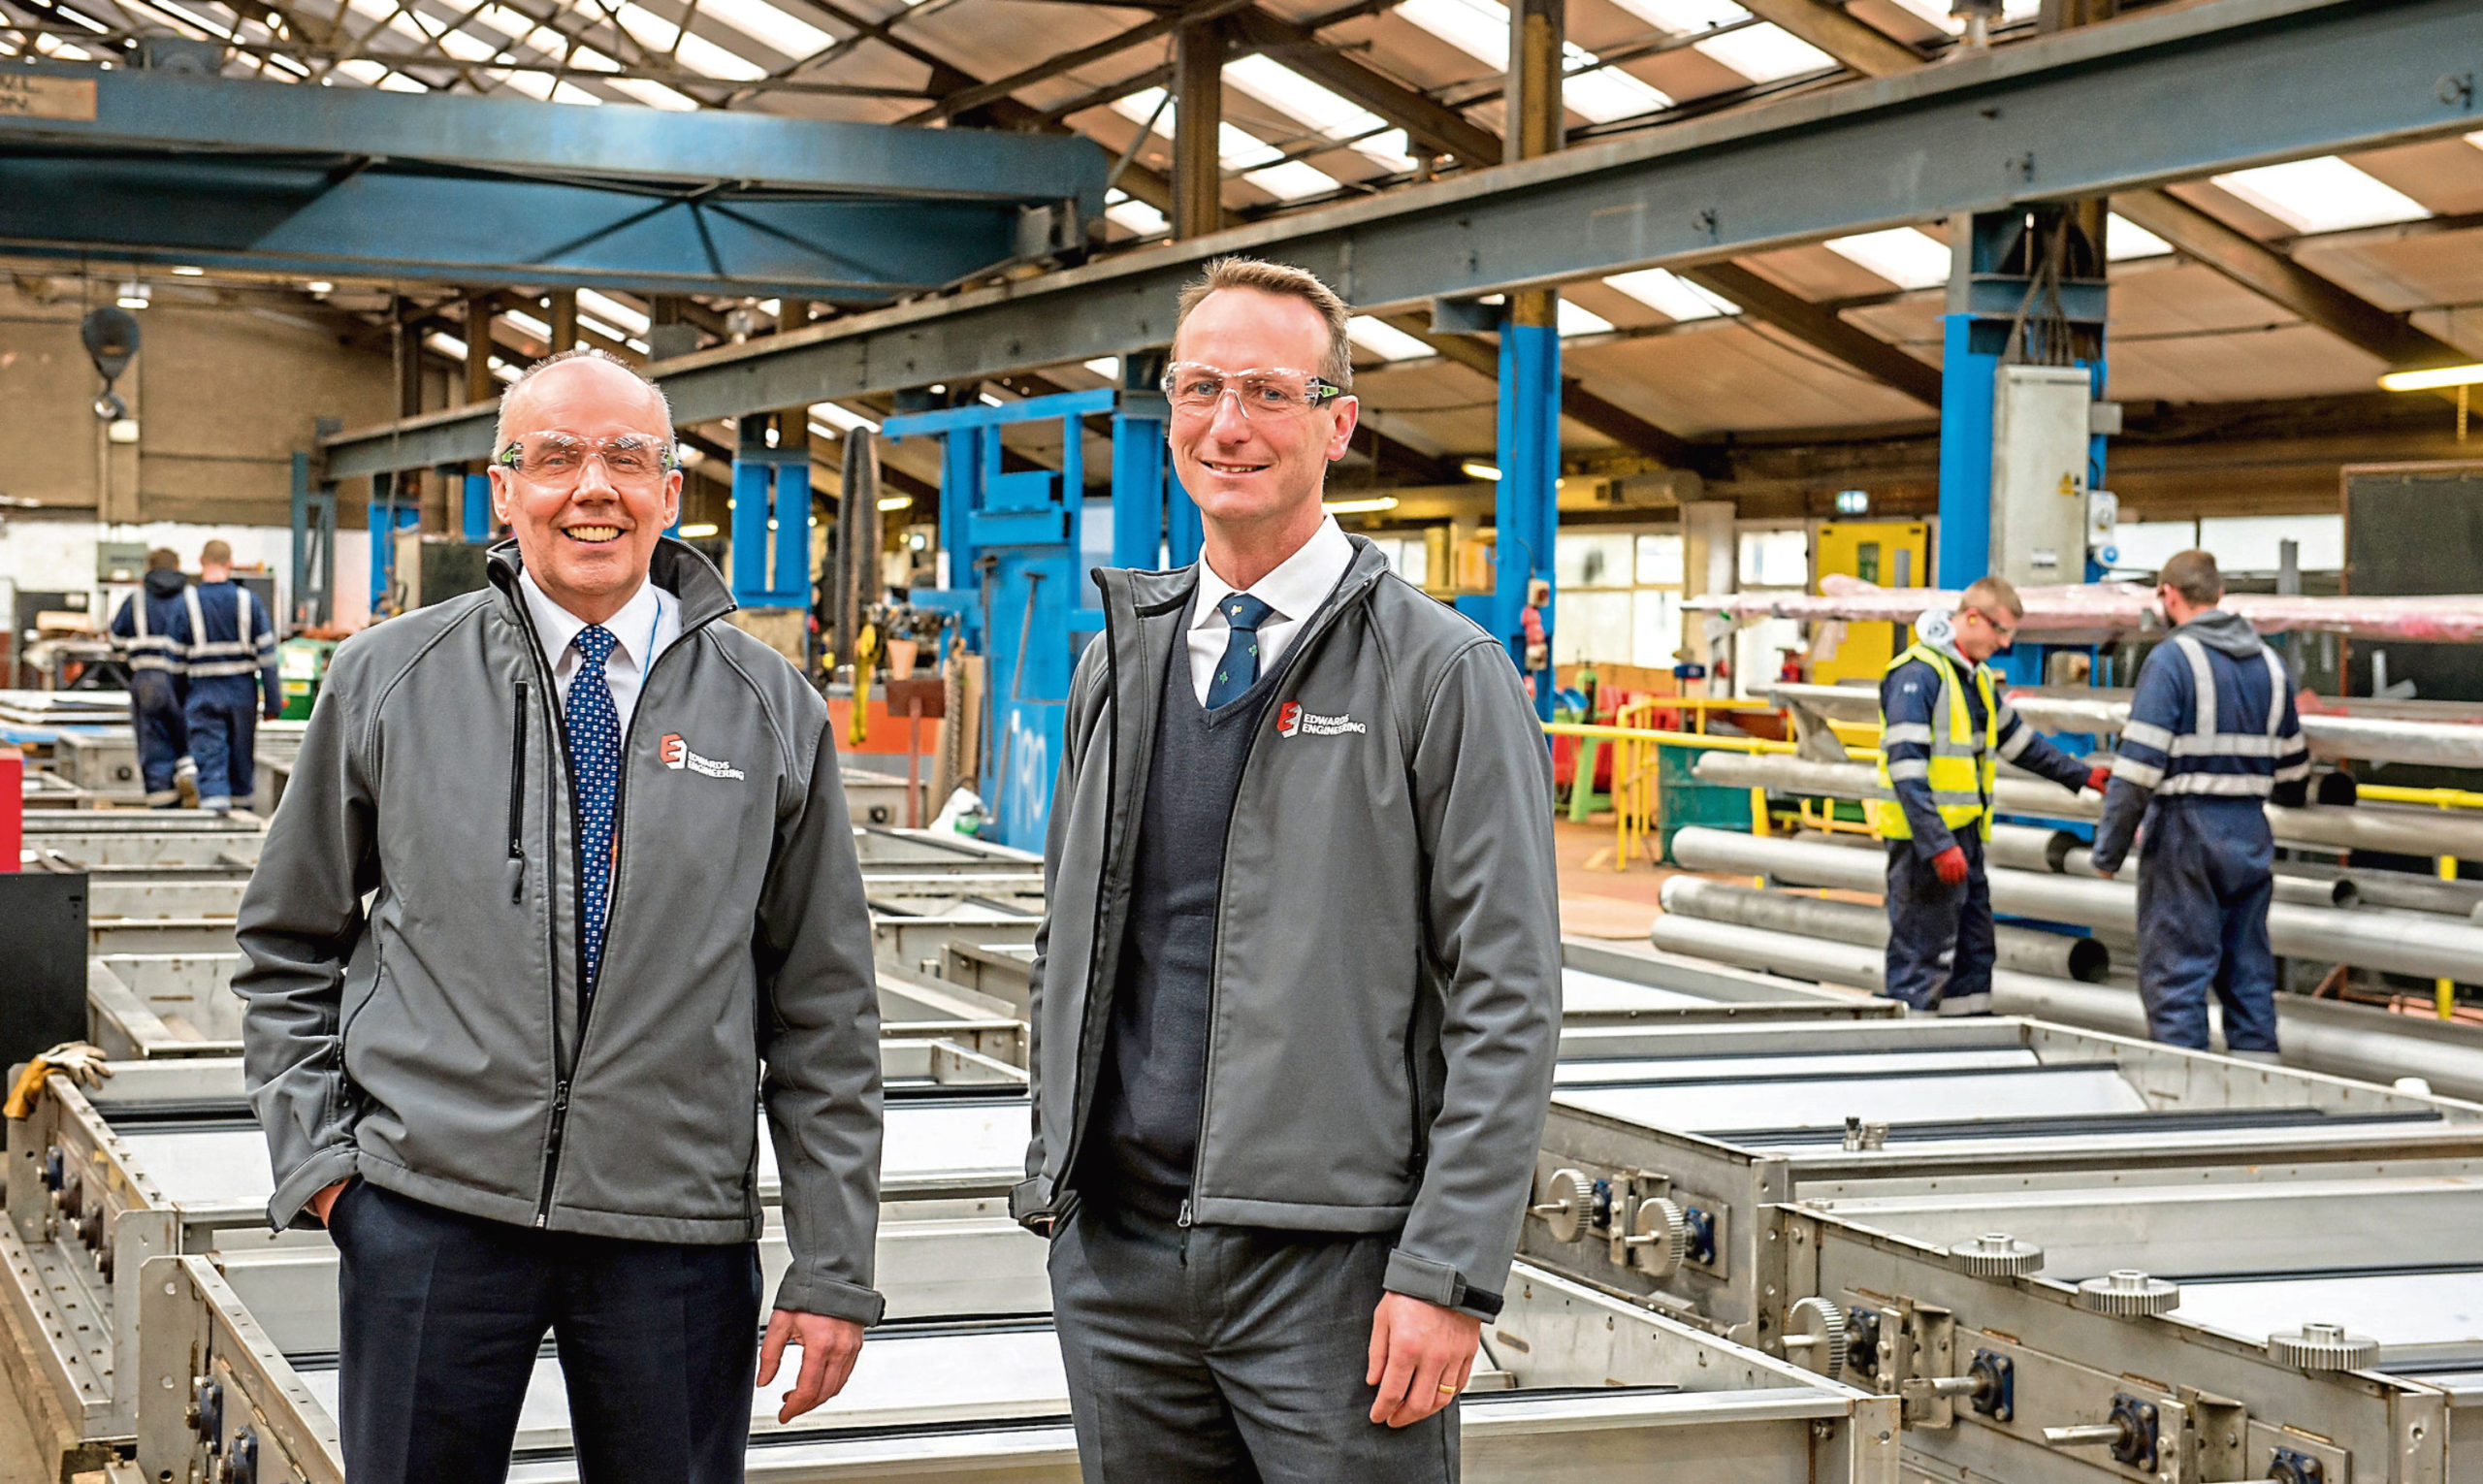 Edwards Engineering managing director Sandy Kirk and chief executive Ben Carter